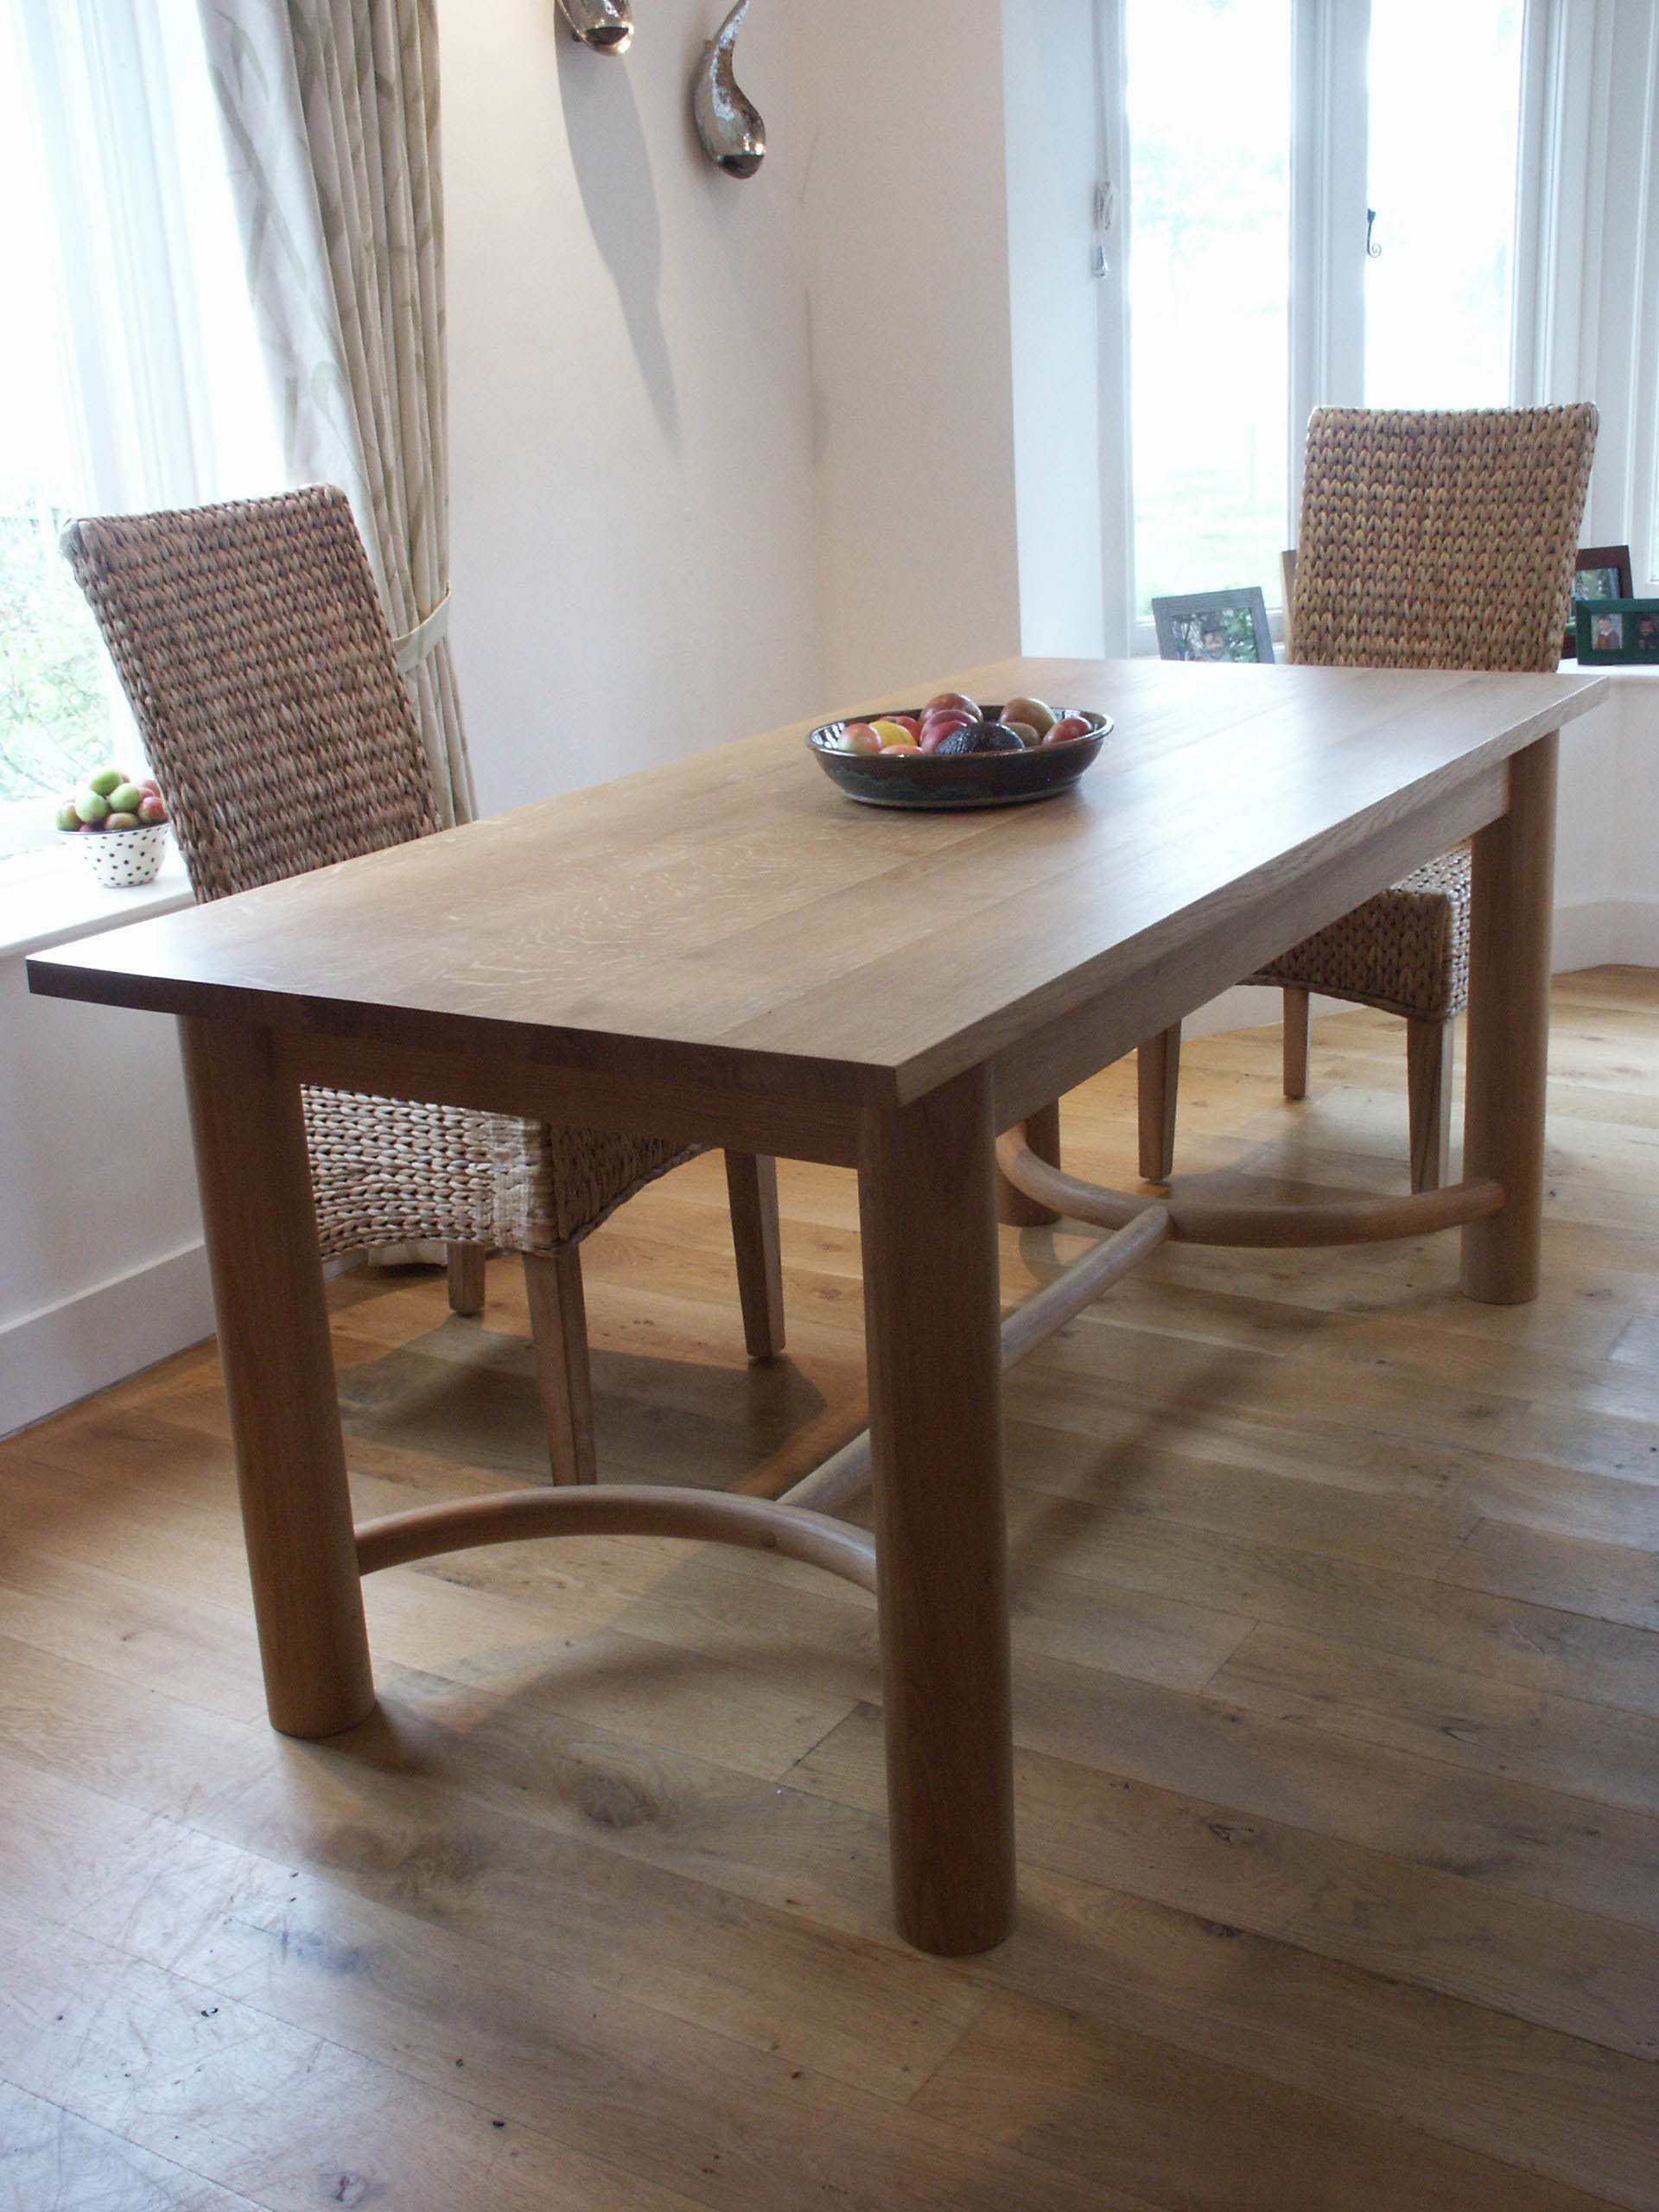 Refectory table 01